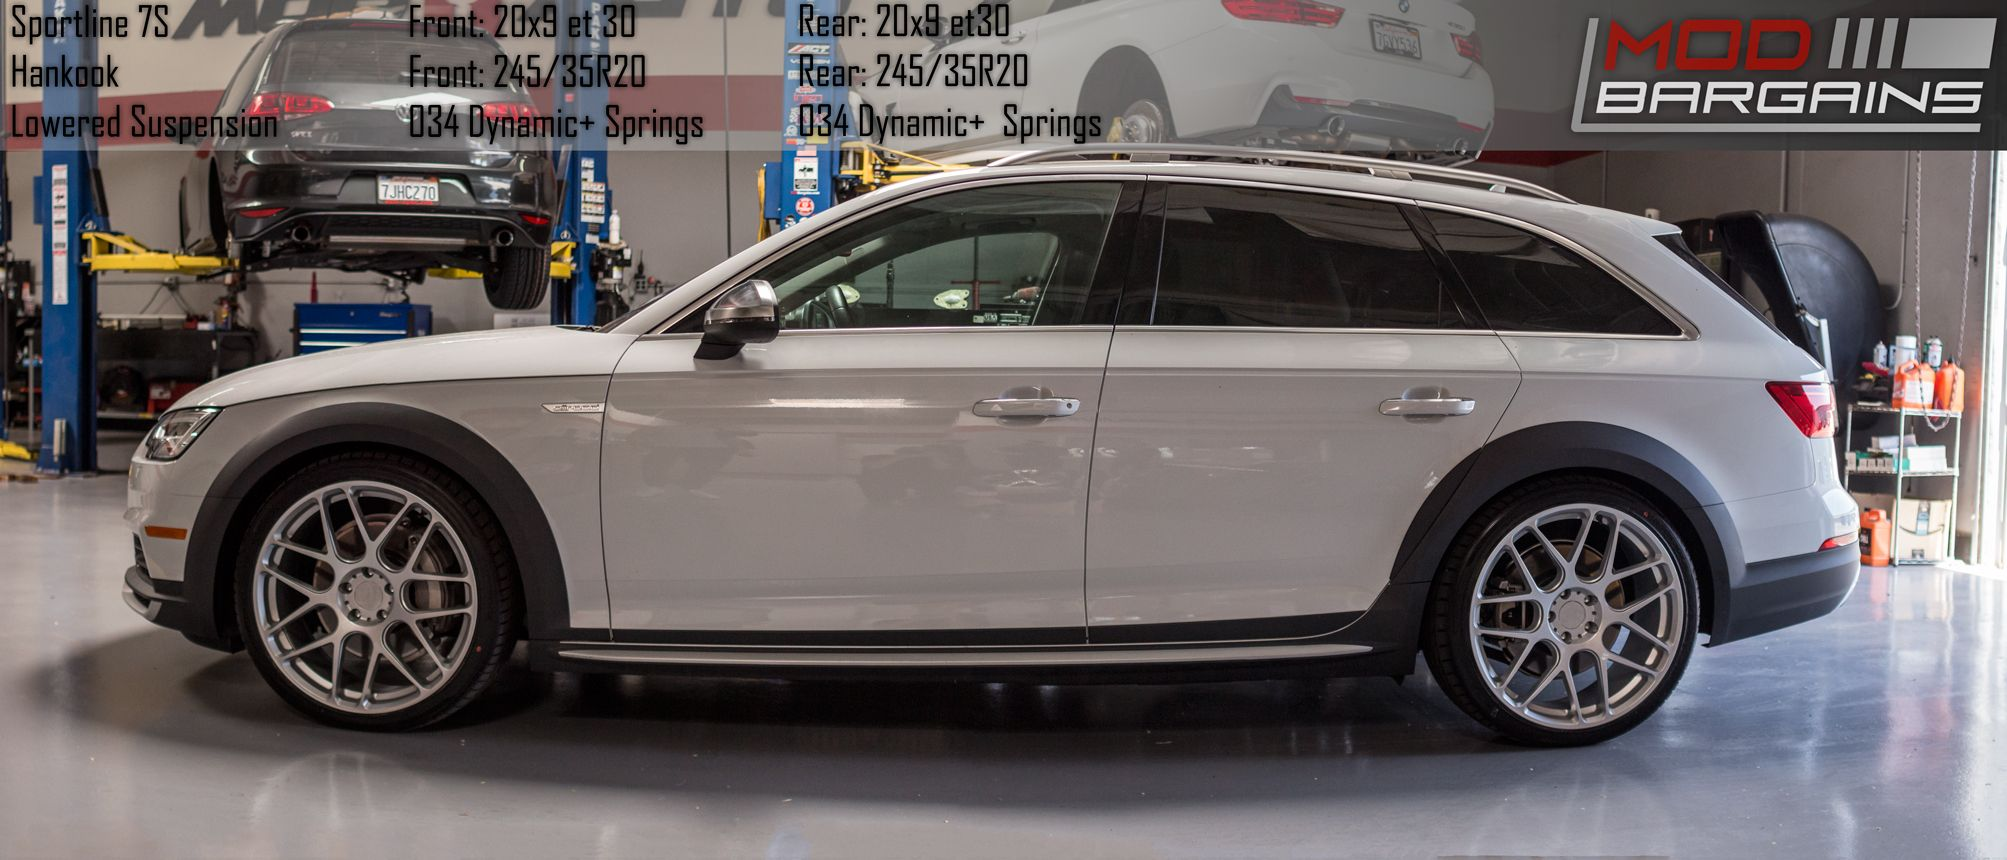 Sportline 7S Wheels Installed on audi A4 All Road [B9]